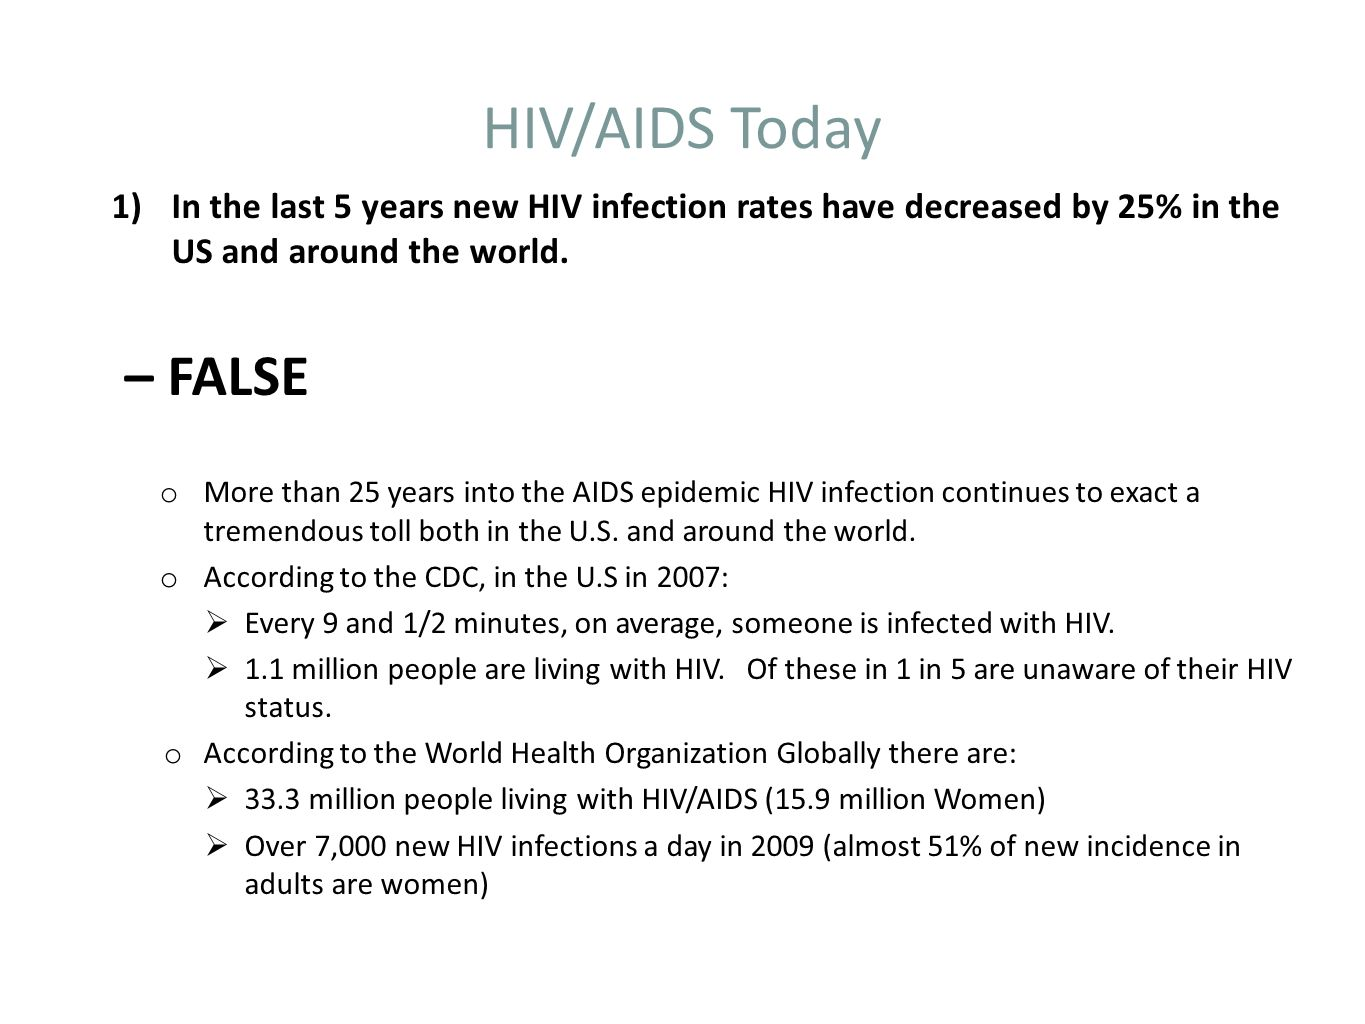 HIV/AIDS Today In the last 5 years new HIV infection rates have decreased by 25% in the US and around the world.